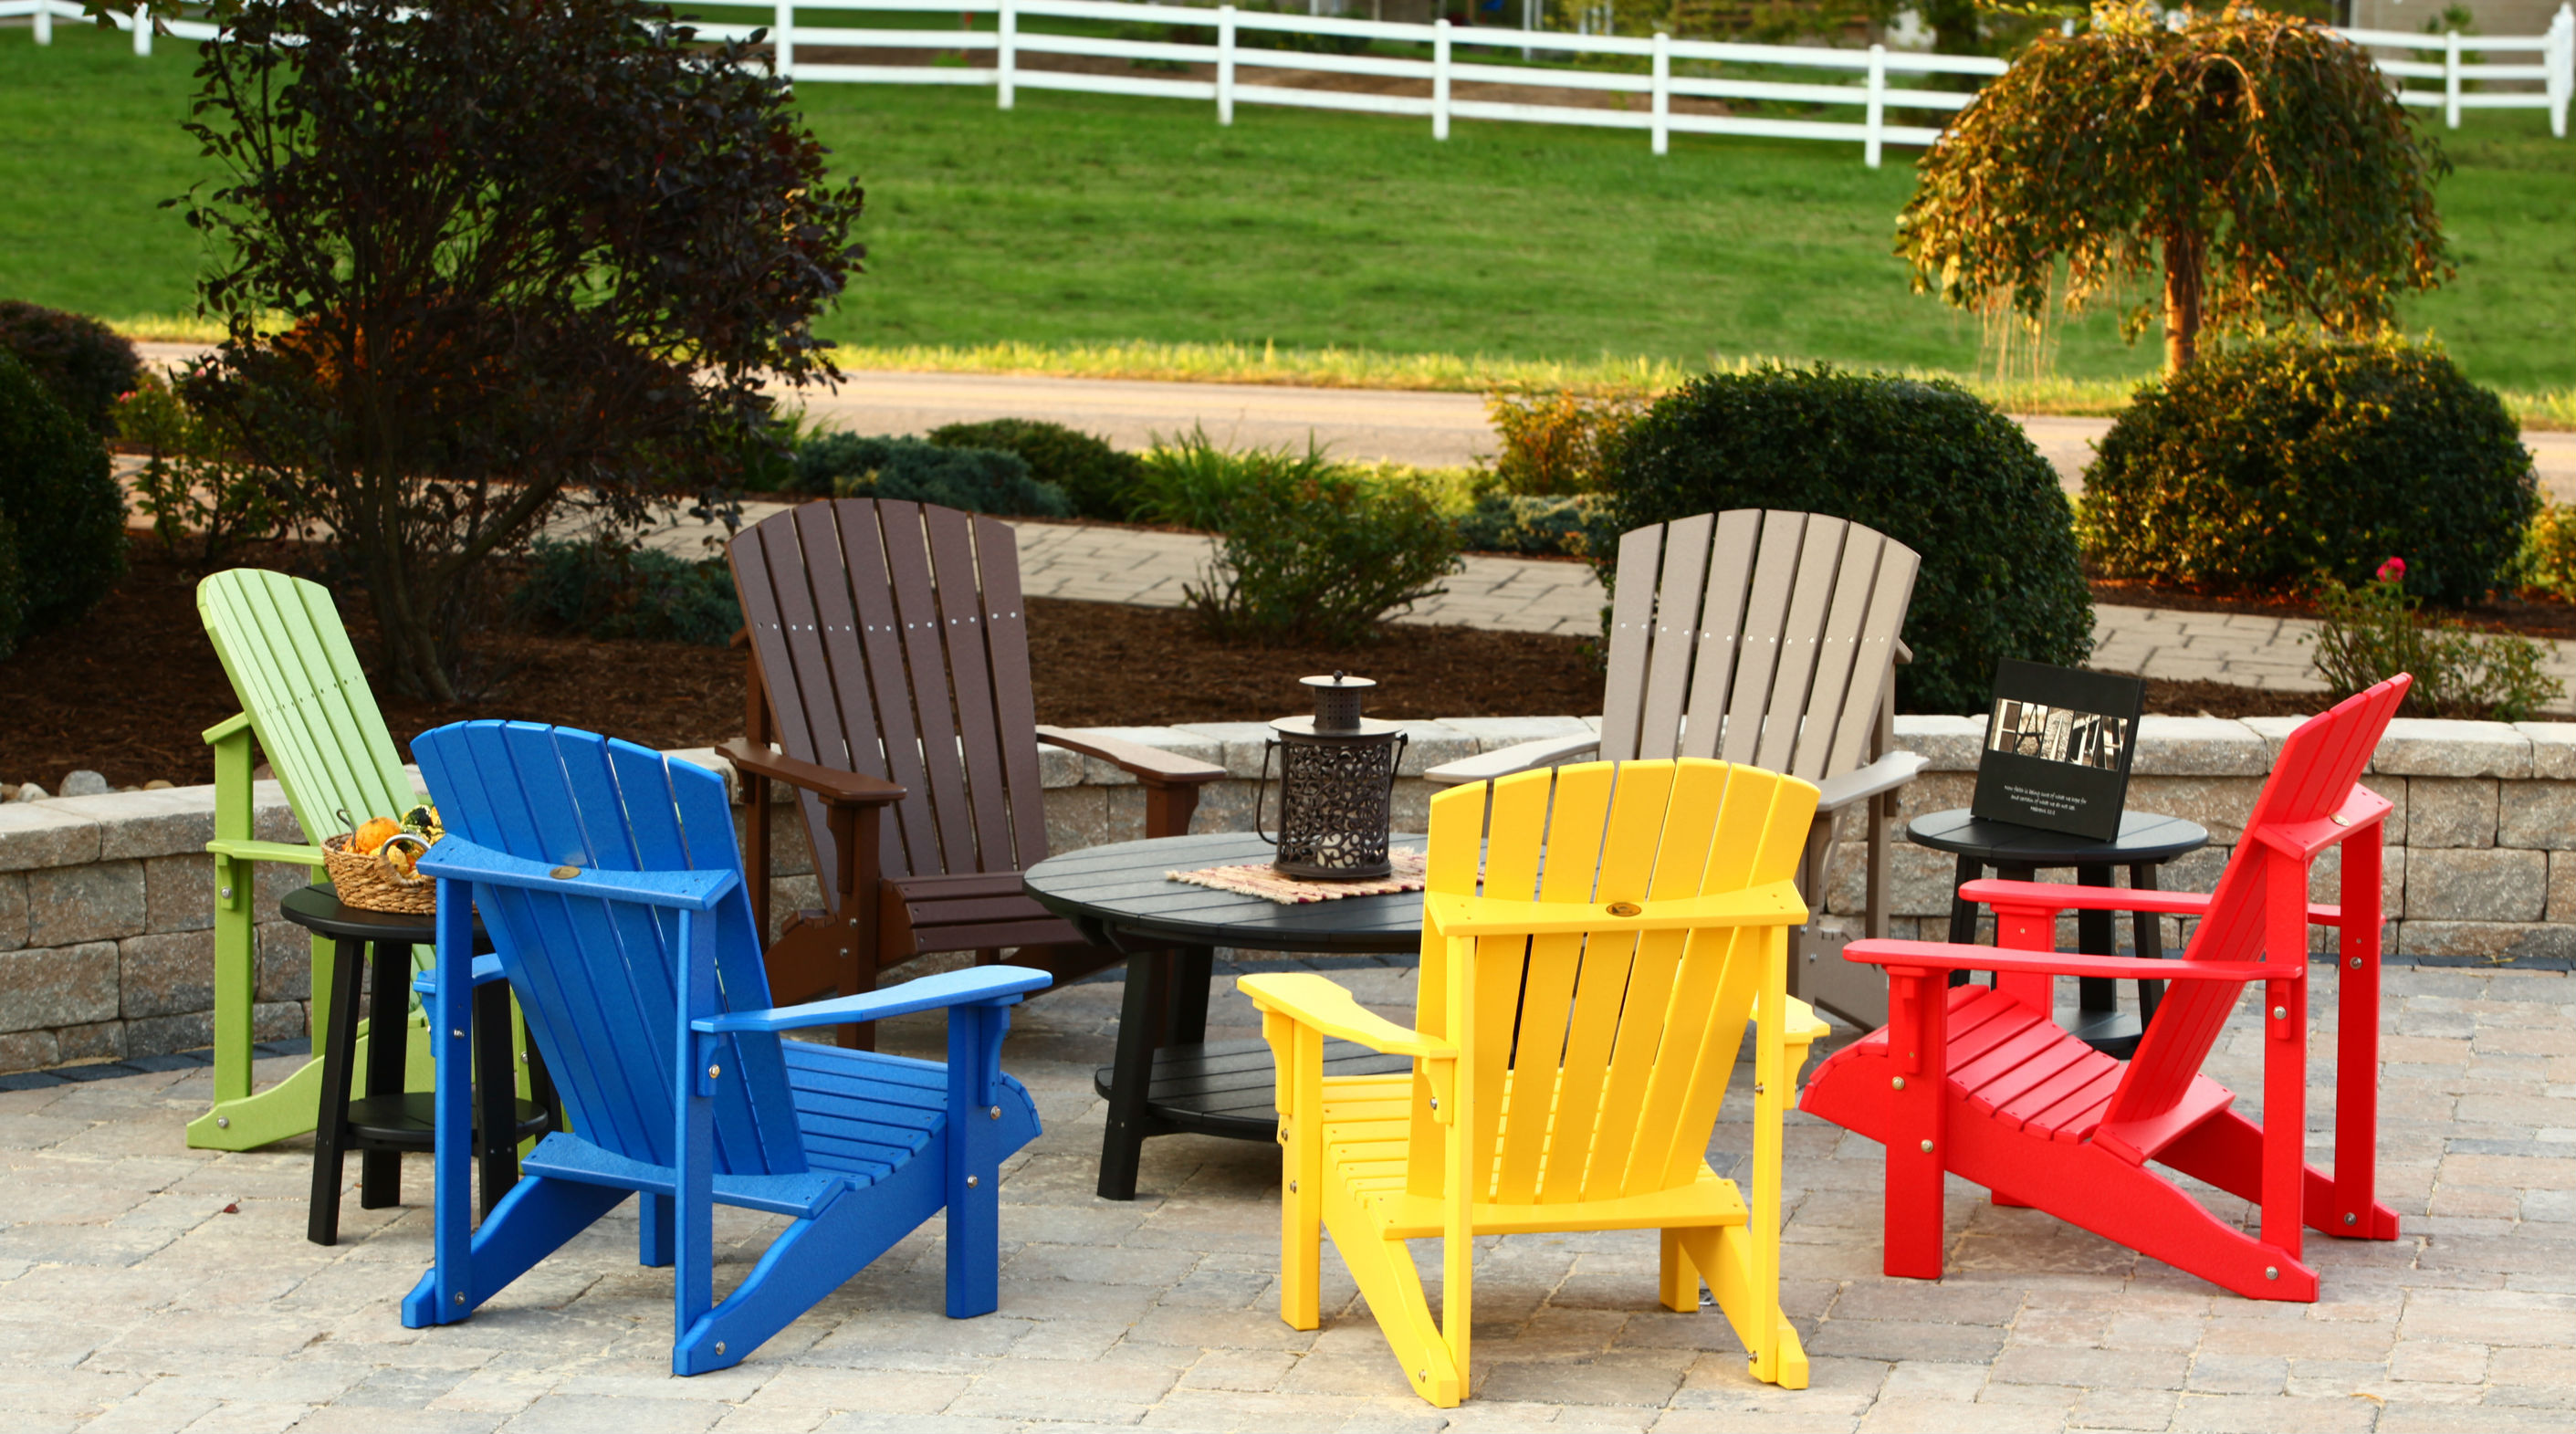 Recycled Plastic Muskoka Chairs